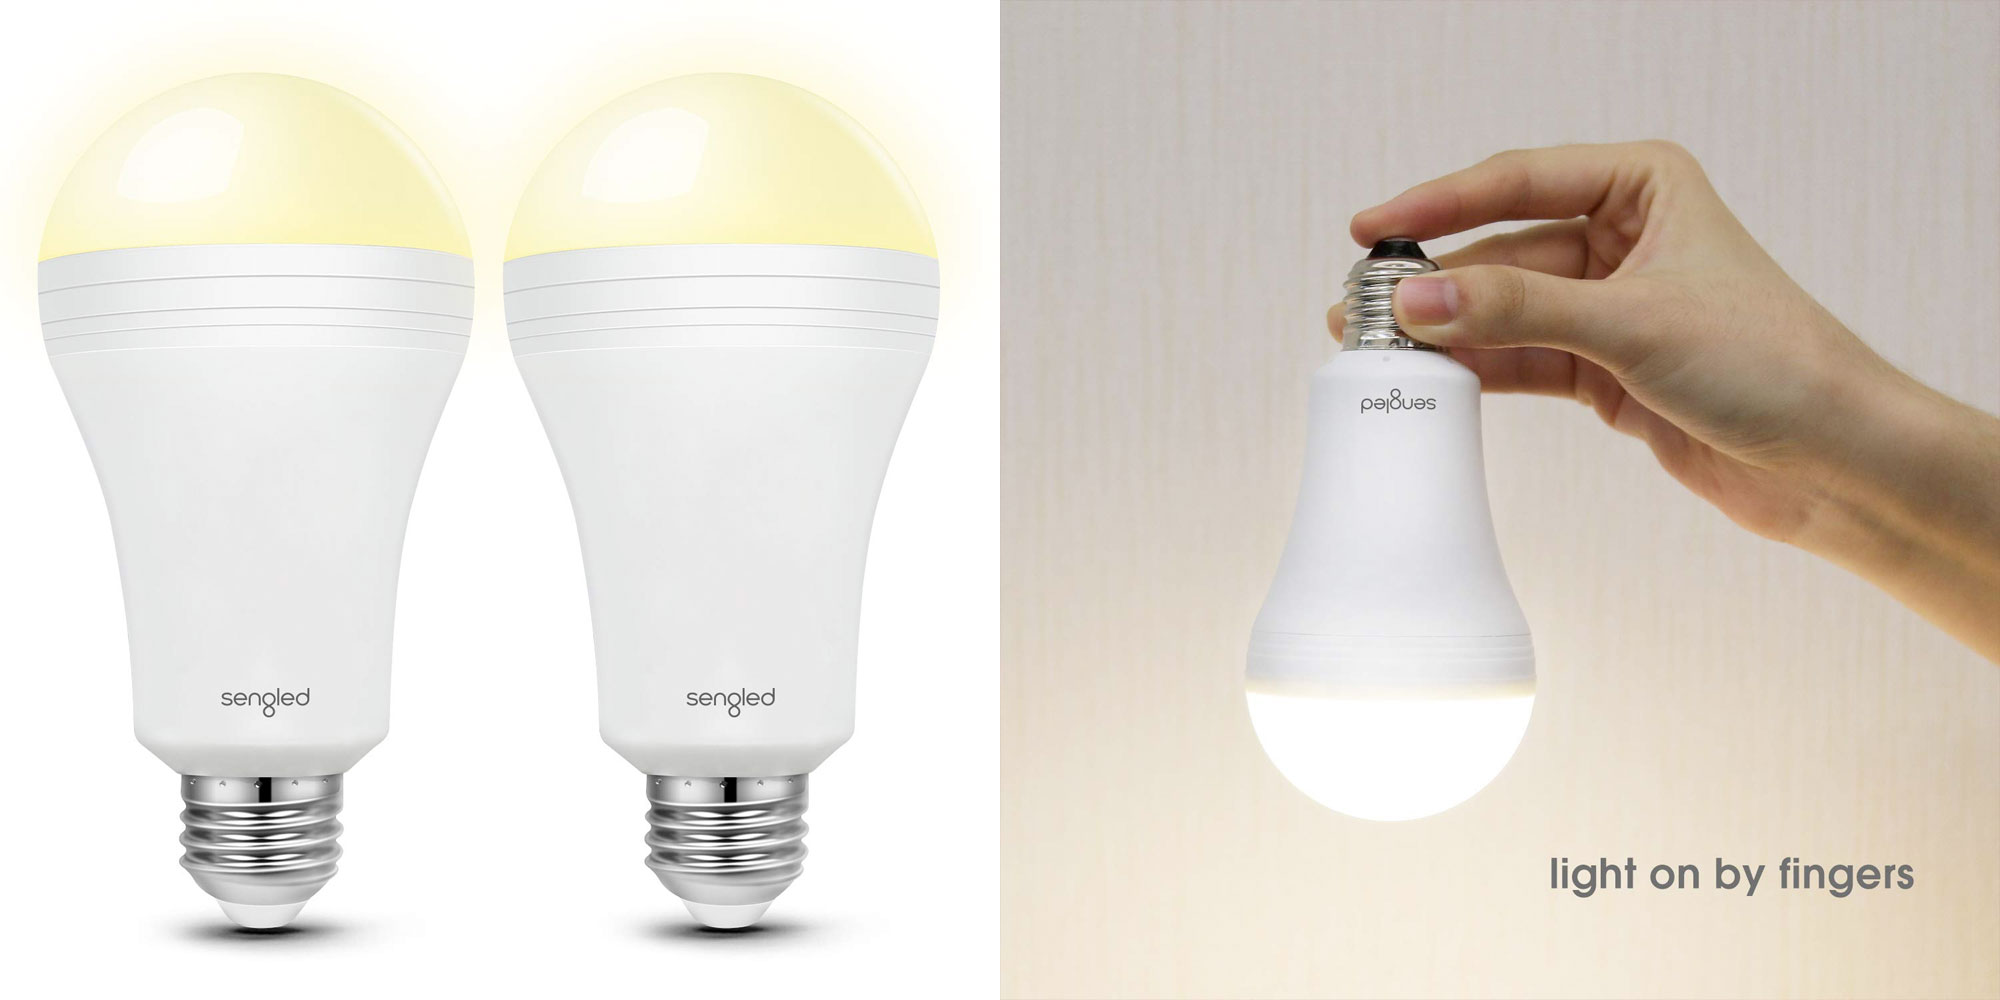 Green Deals: 2-pack LED emergency light bulbs w/ built-in rechargeable battery $17, more